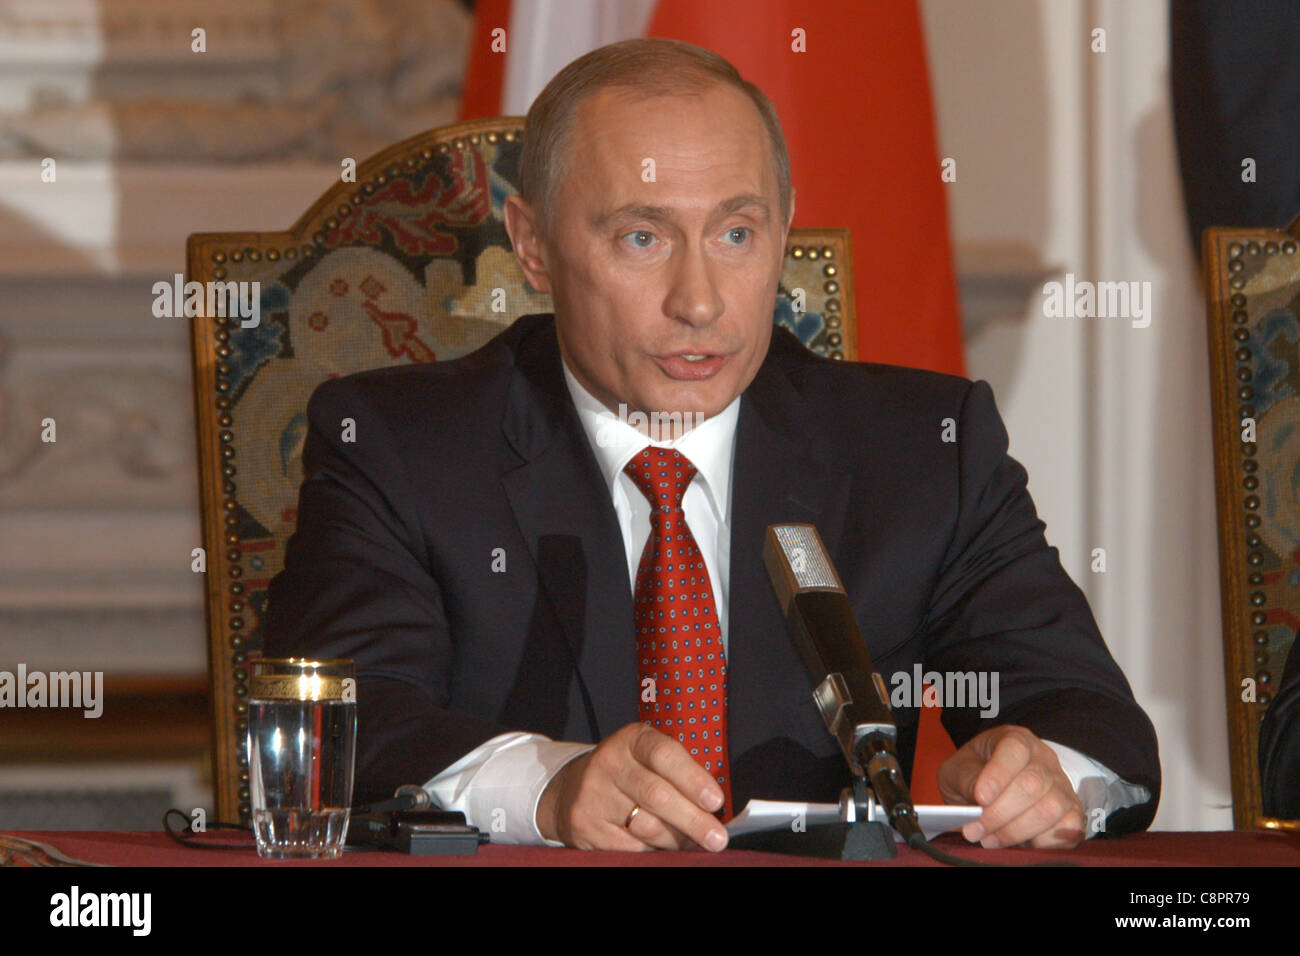 Russian president Vladimir Putin attends a news conference during his visit to Prague, Czech Republic on 1 March - Stock Image